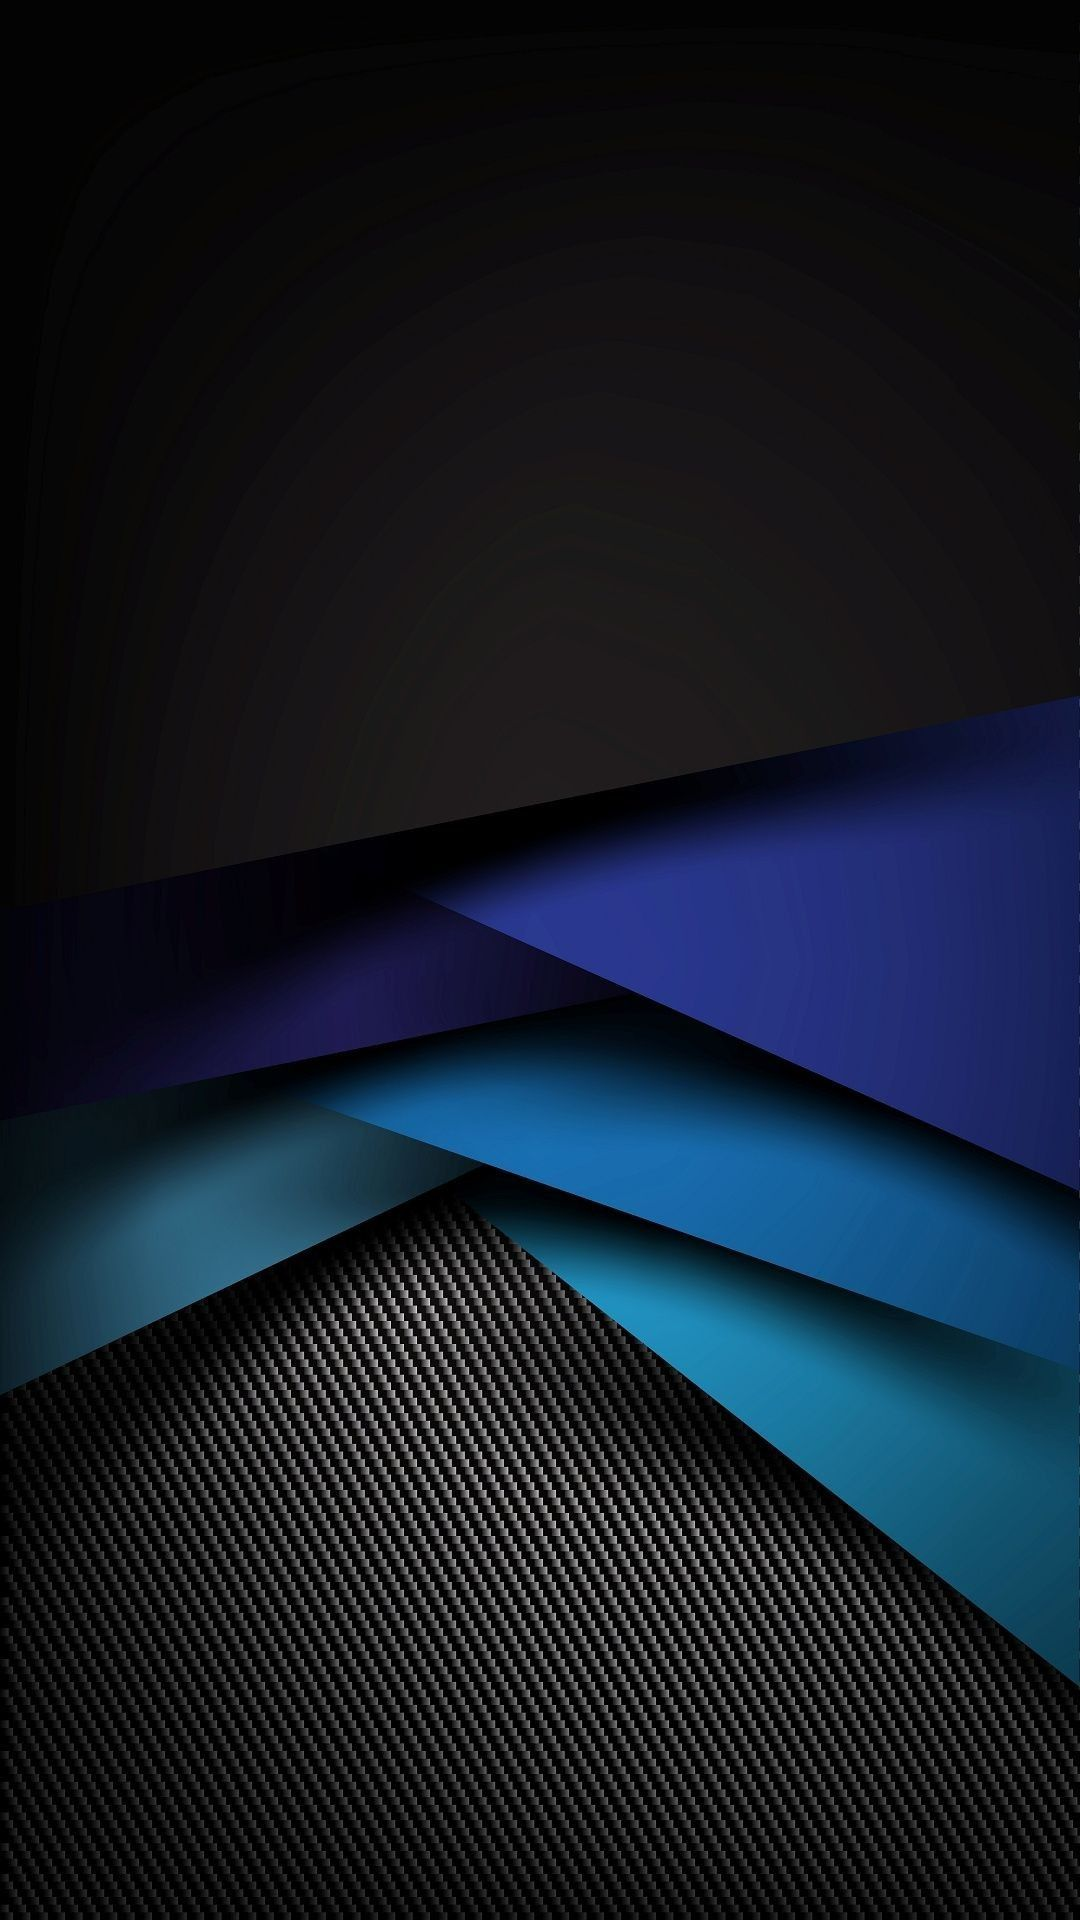 Black and Blue Geometric Abstract Wallpaper Geometric